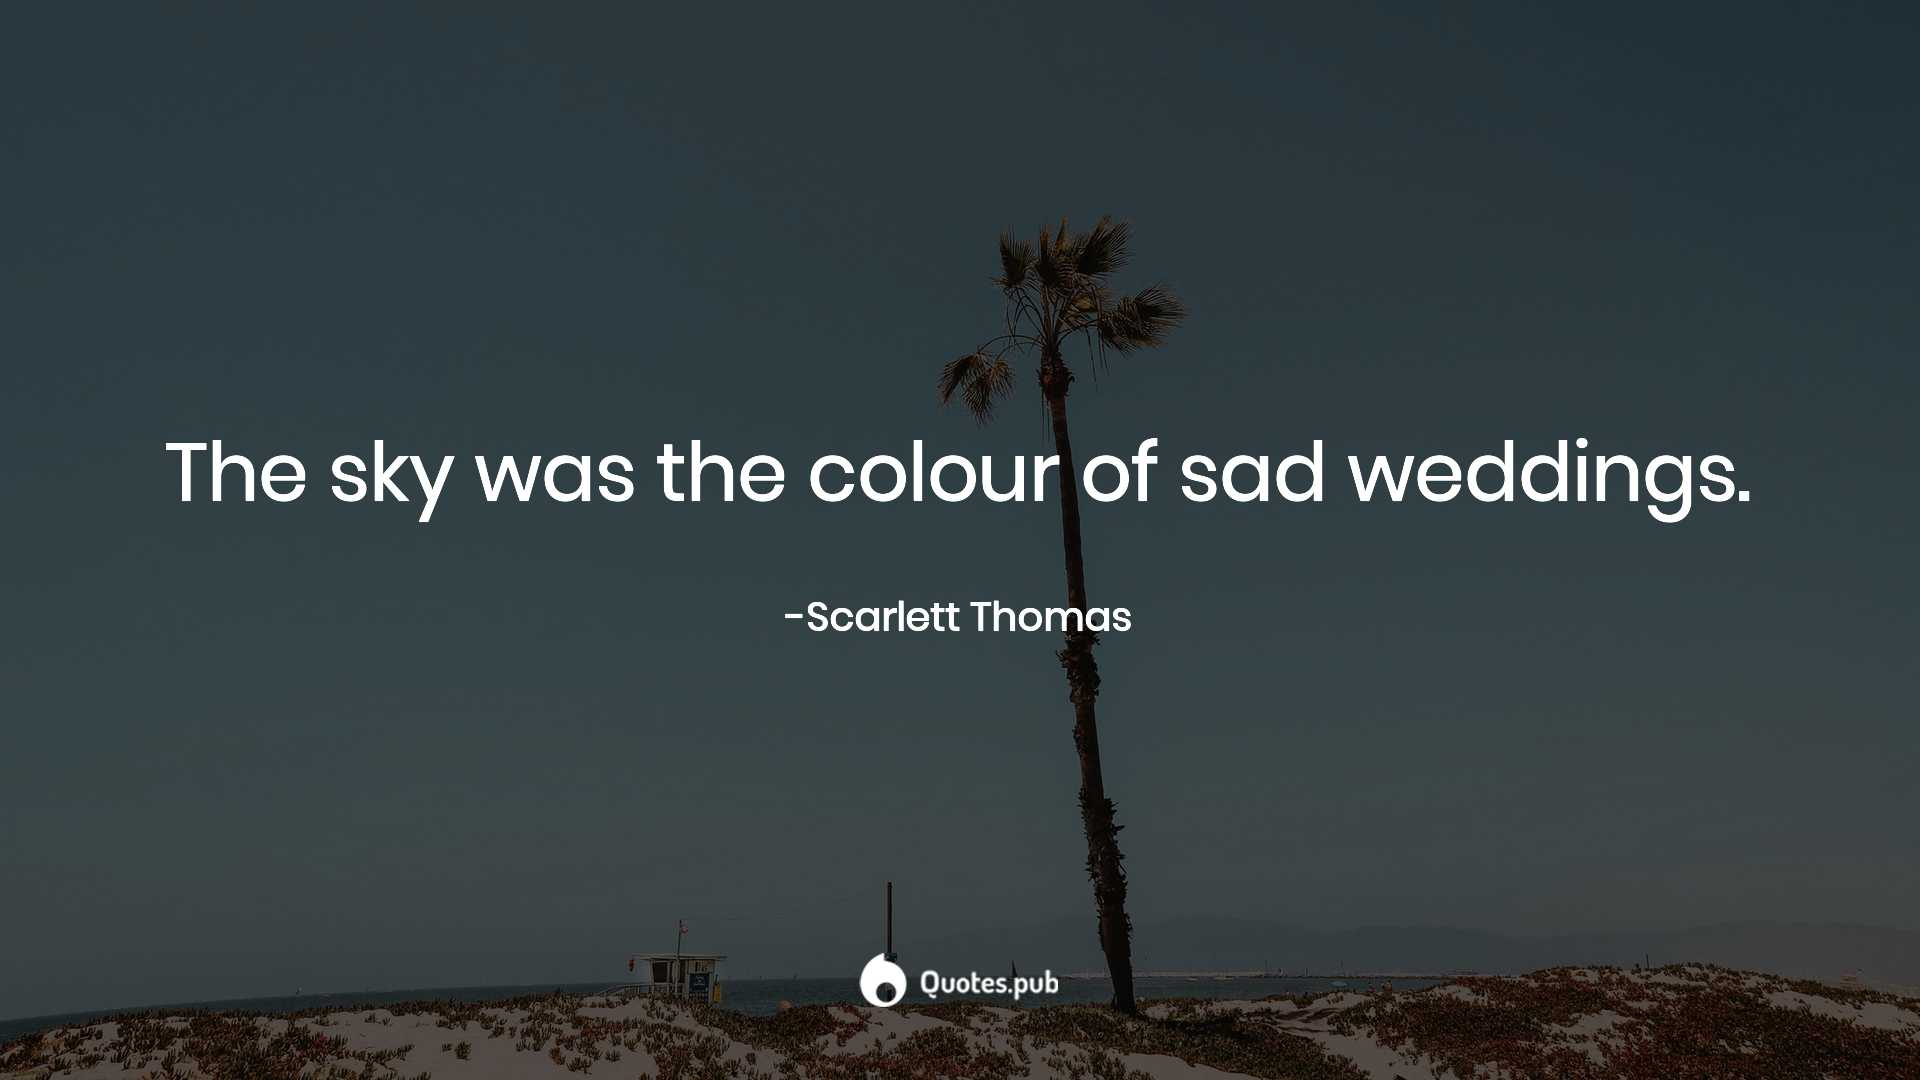 the sky was the colour of sad weddin scarlett thomas quotes pub